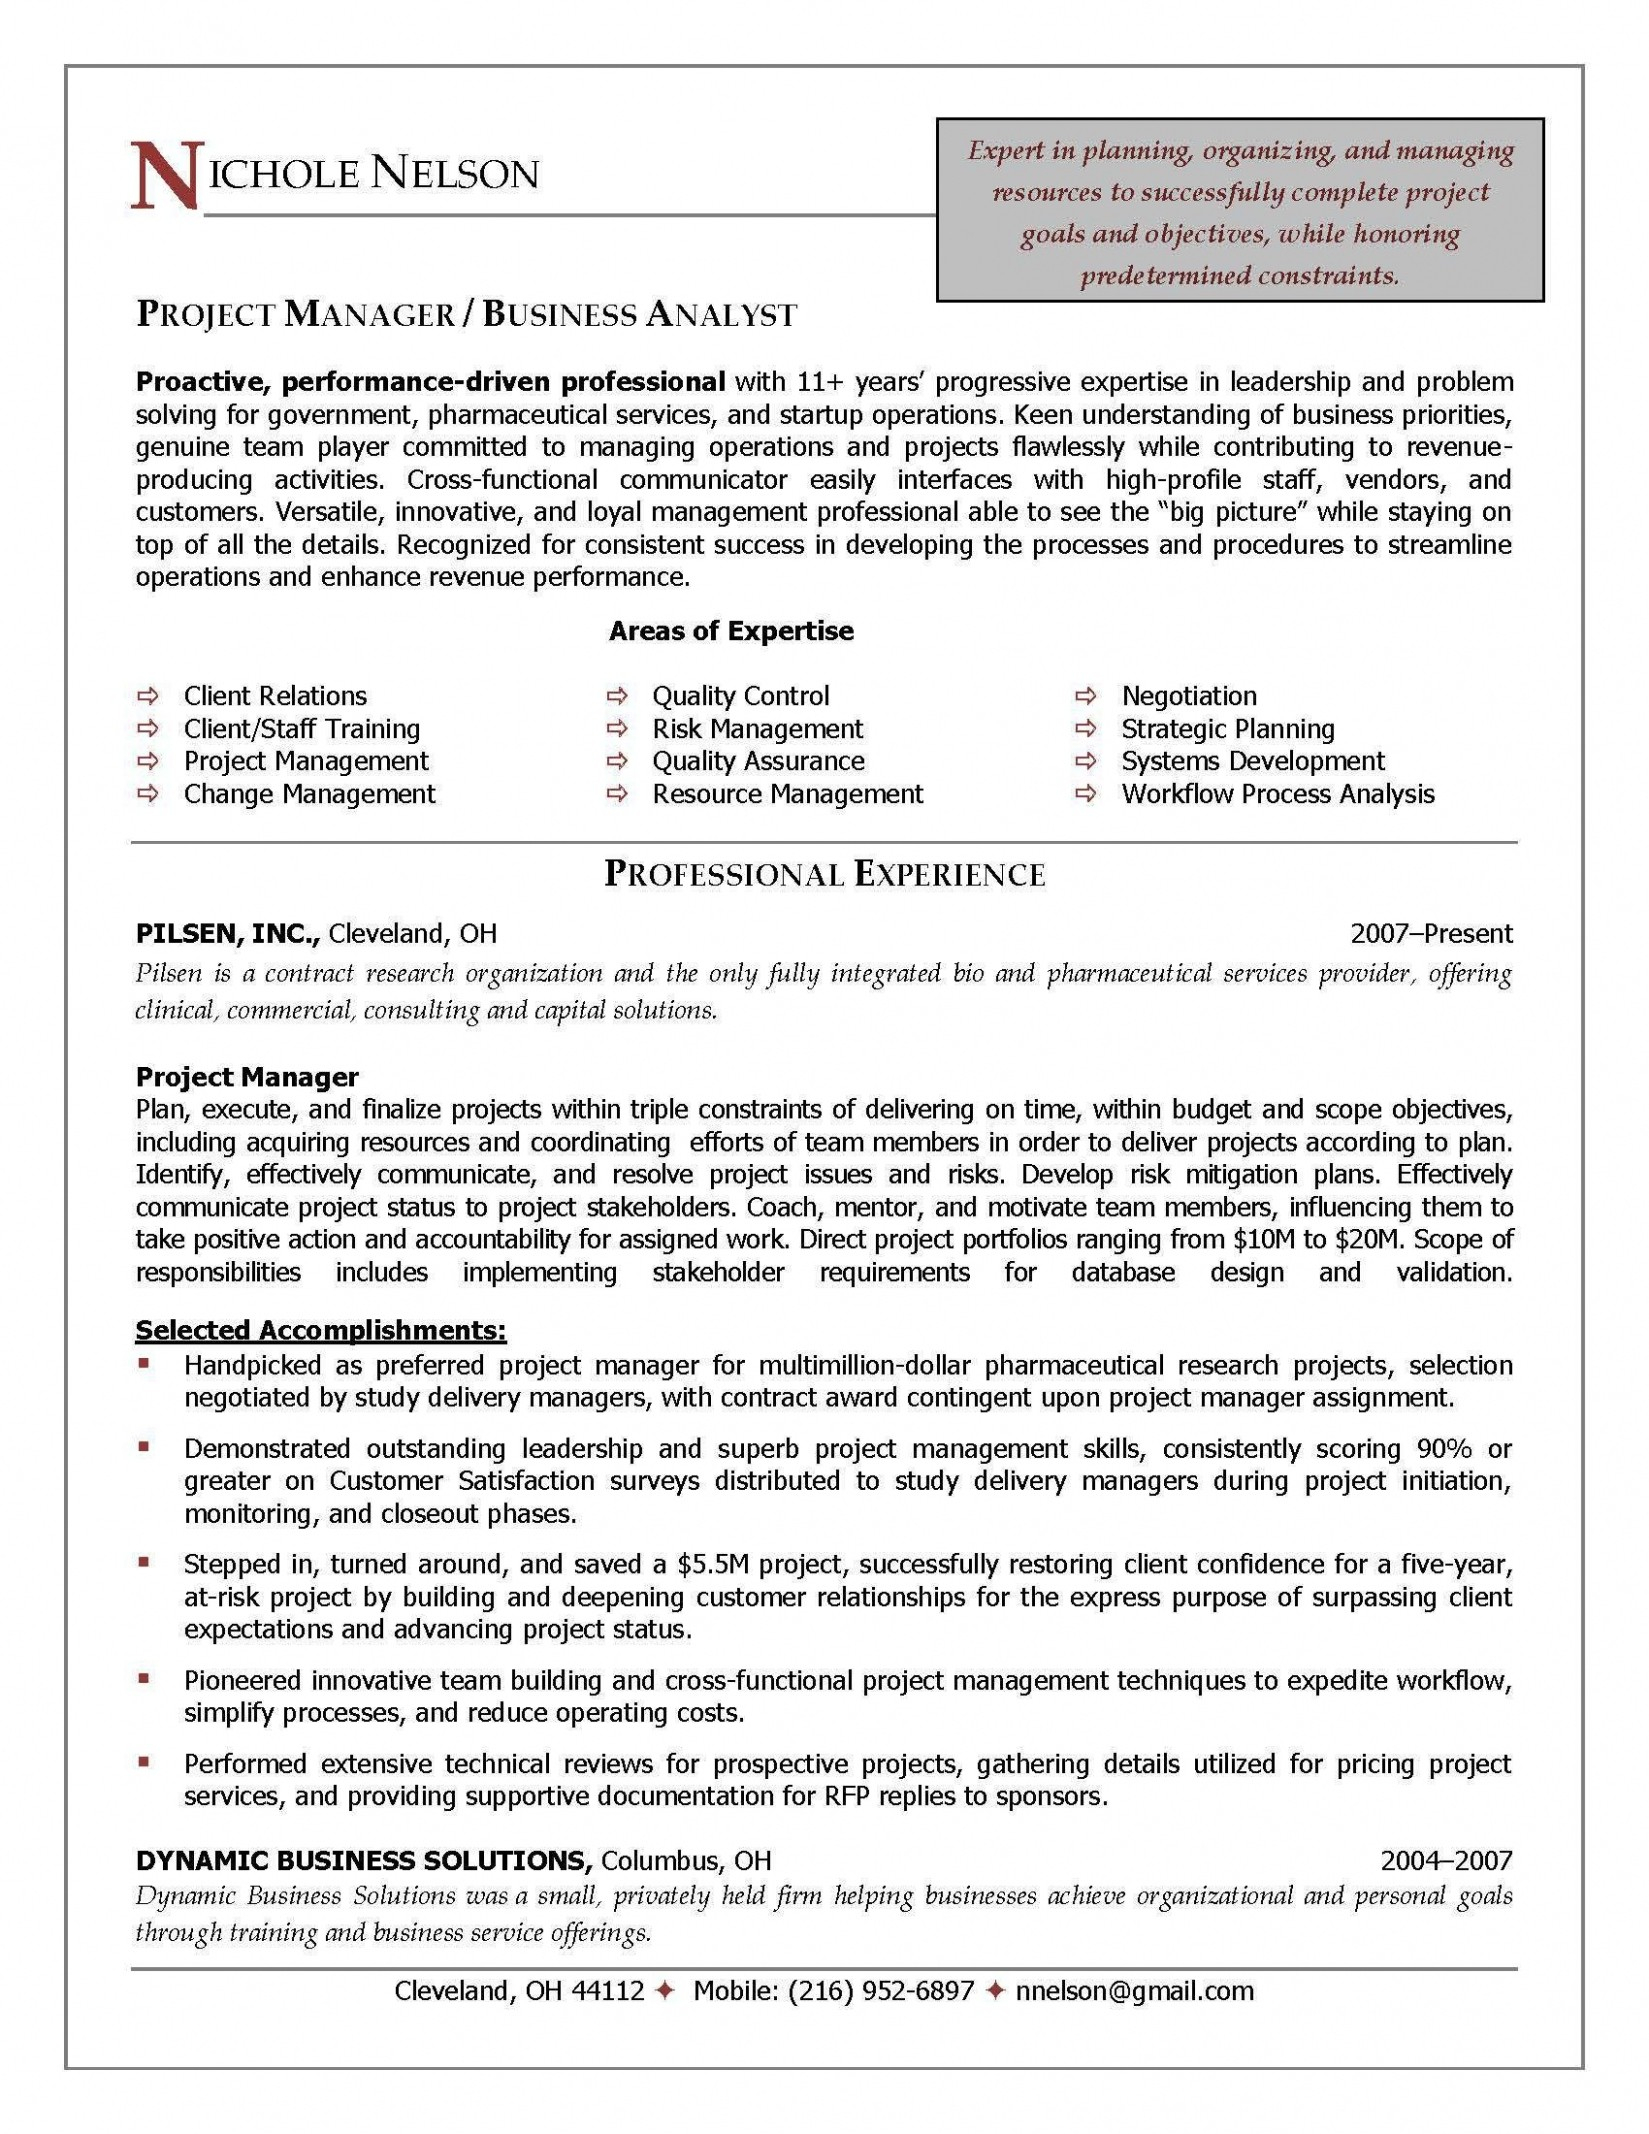 quality control resume example-Quality Control Resume Unique Awesome Examples Resumes Ecologist Resume 0d Technical Resume Quality Control Resume 19-m